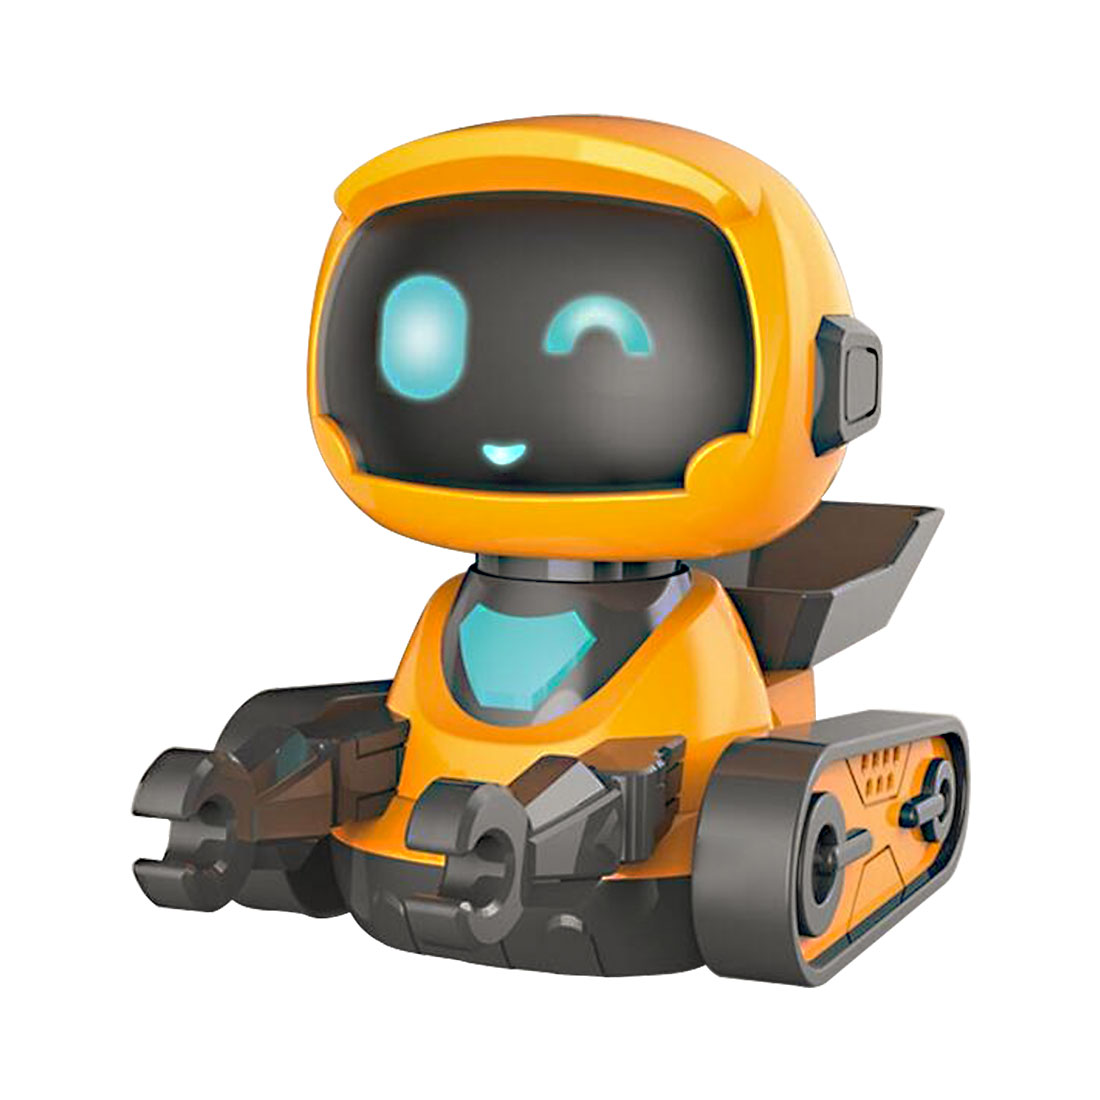 Children High Tech  Intelligent RC Programming Dancing Robot With Watch Shaped Remote Control - Caterpillar Type